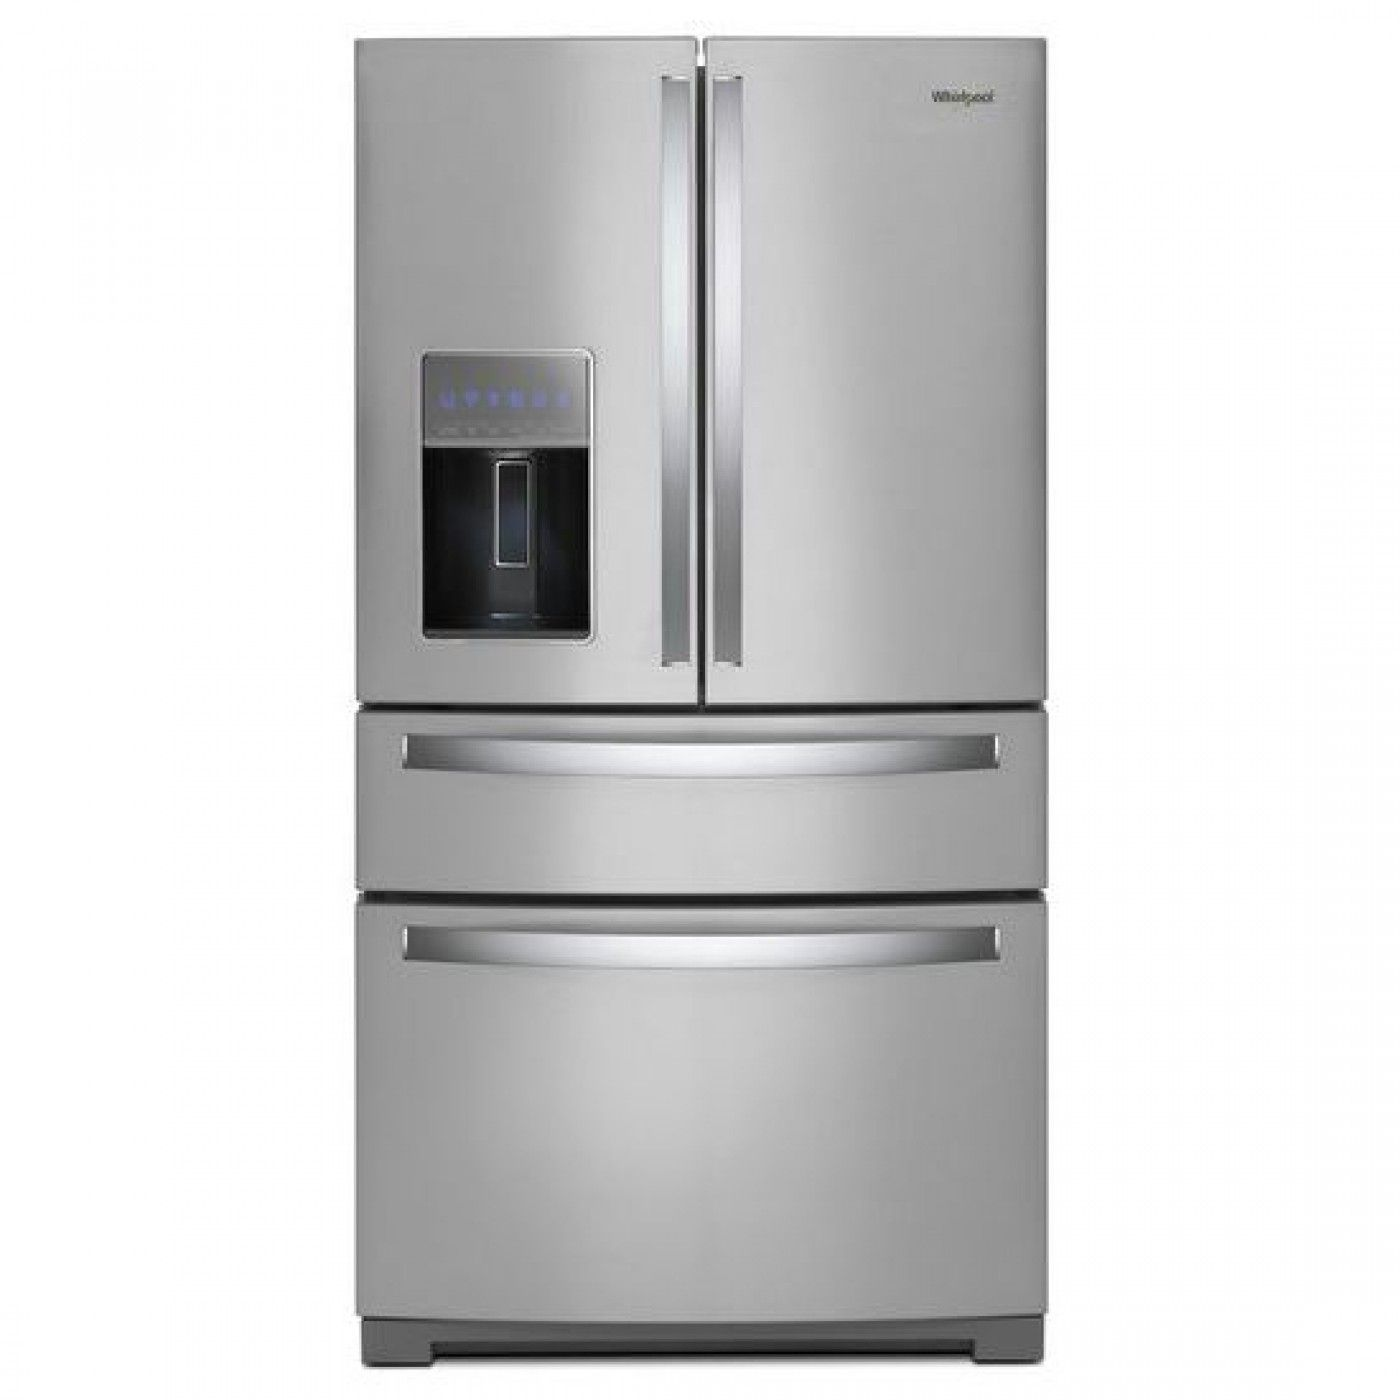 Wrx986sihz By Whirlpool French Door Refrigerators Goedekers Com French Door Refrigerator Stainless Steel French Door Refrigerator Best Refrigerator